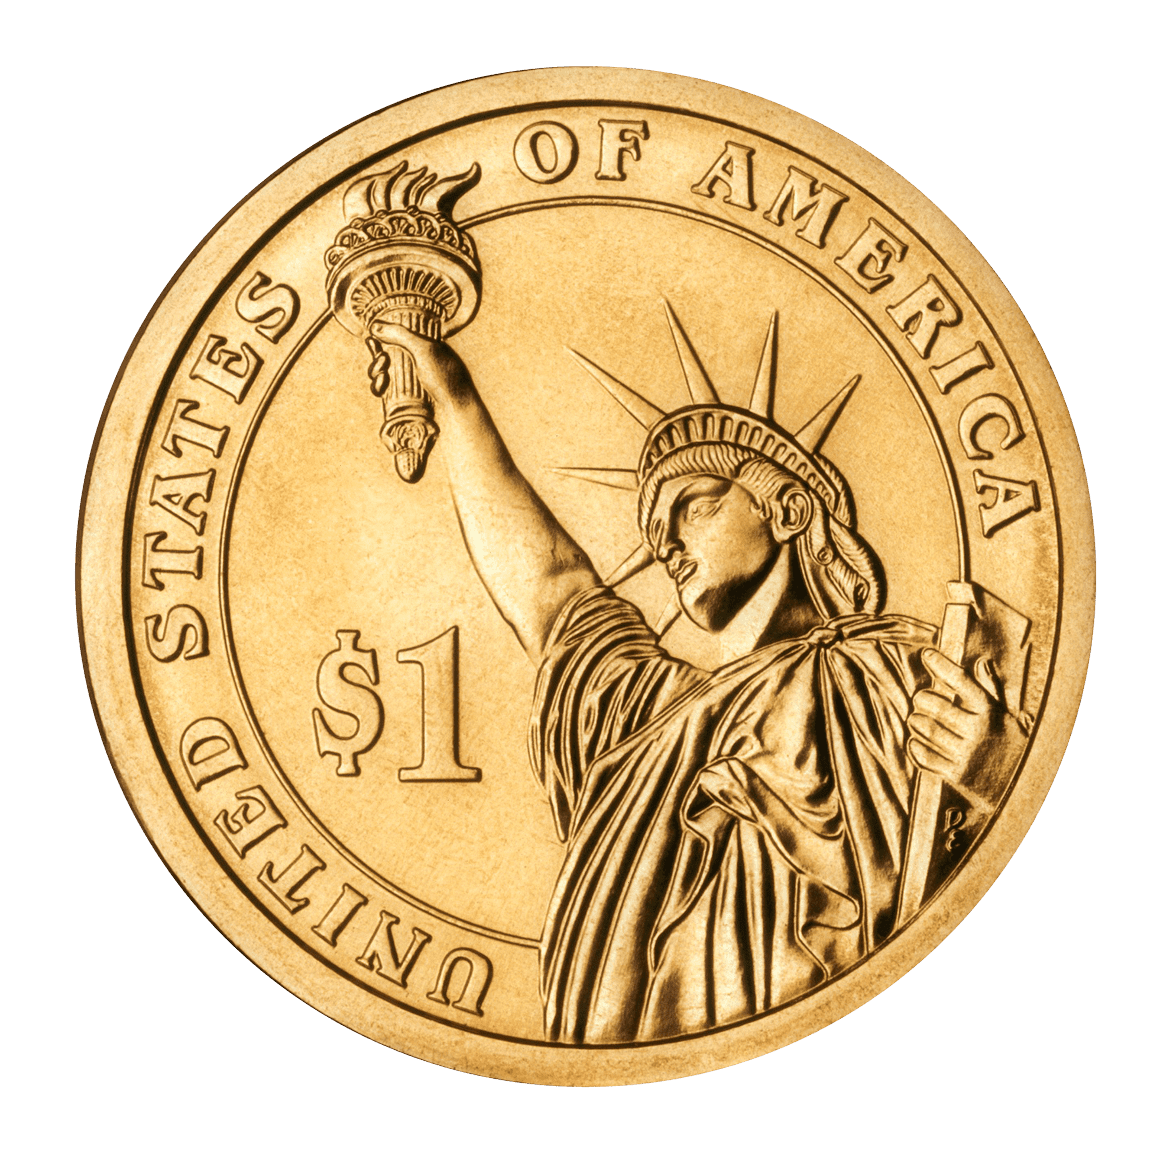 Dollar png free images. Coin clipart money australian